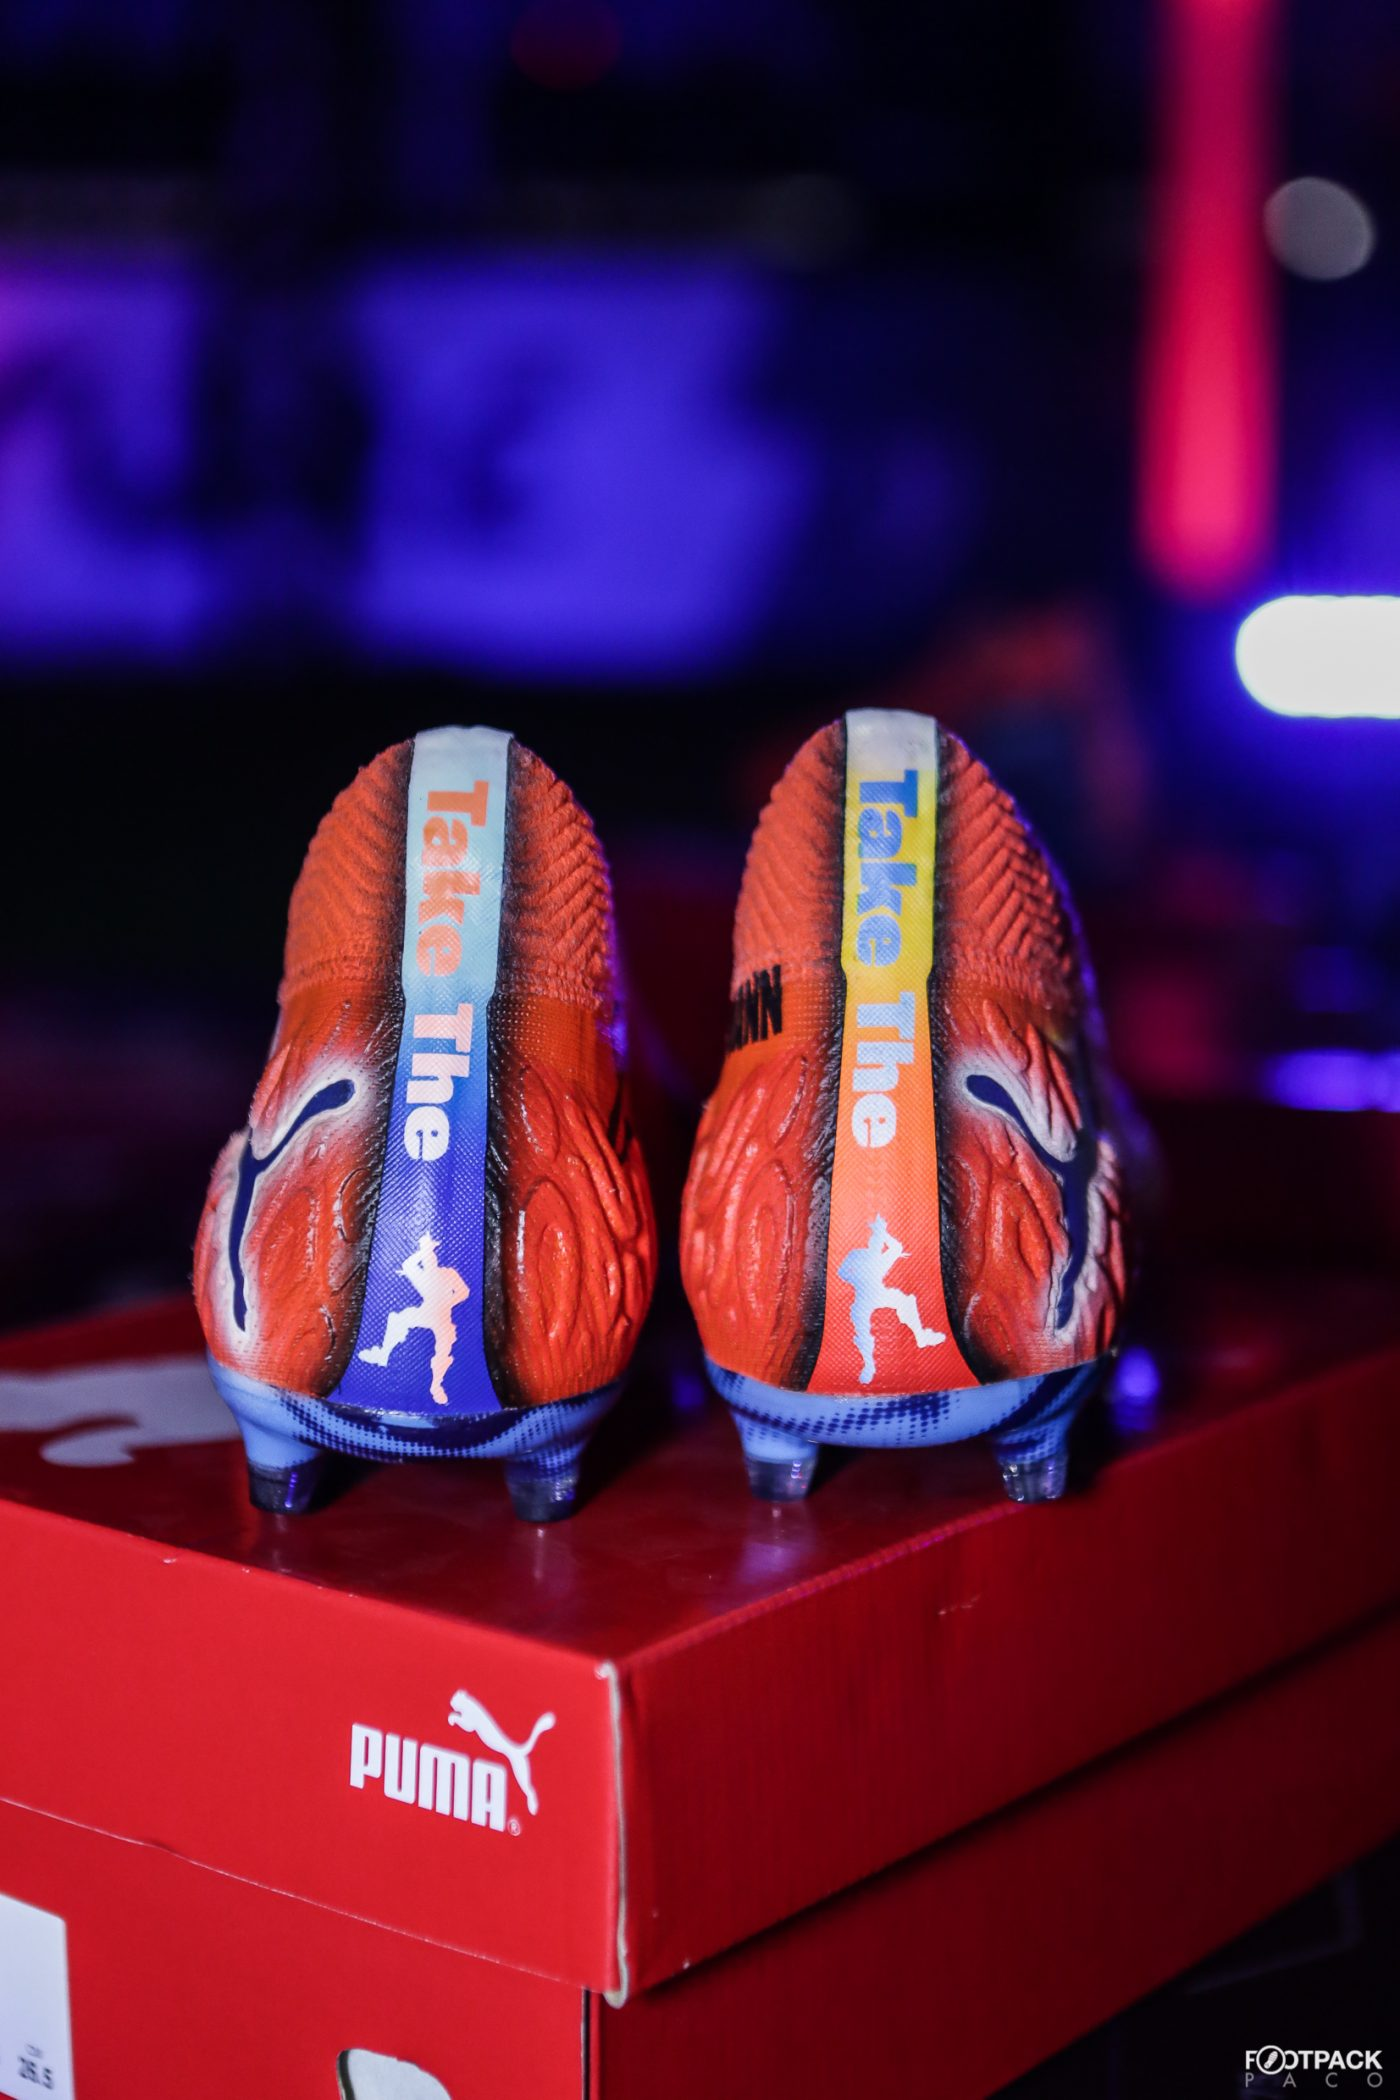 puma-power-up-night-marseille-footpack-février-2019-18puma-power-up-night-marseille-footpack-février-2019-18